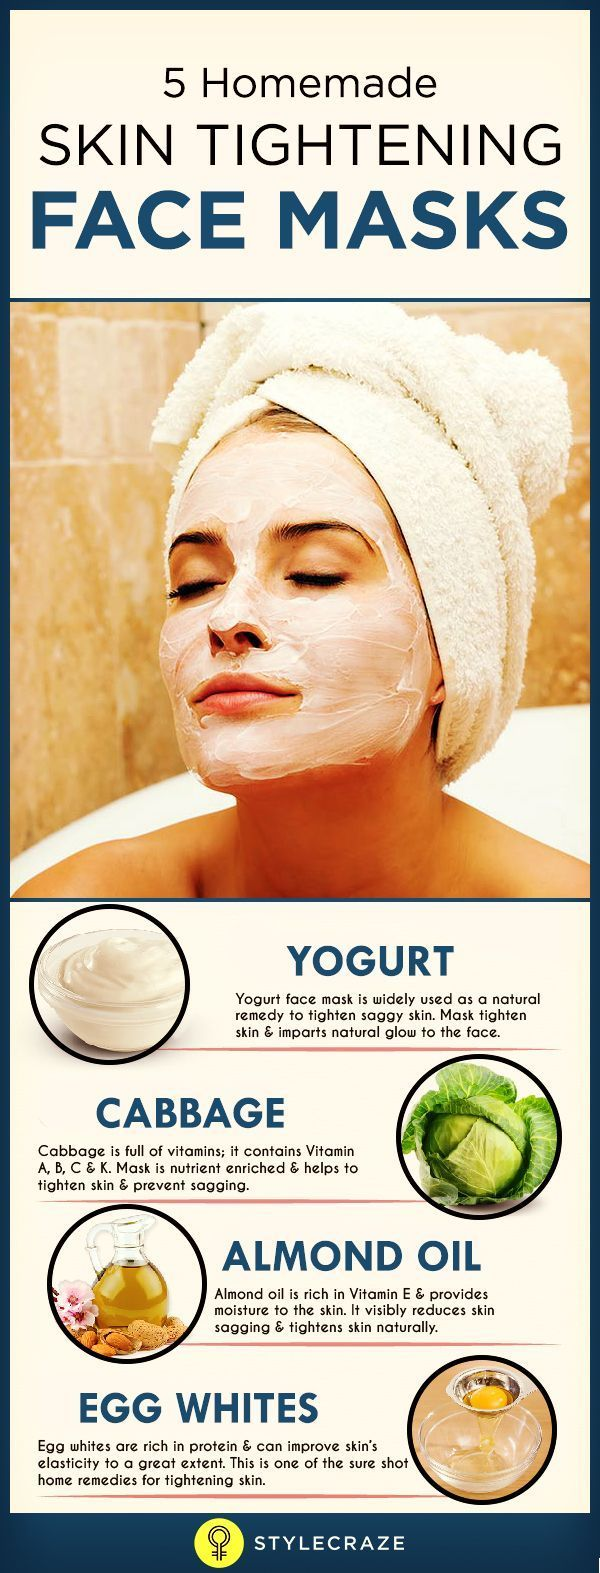 Home remedies for tightening facial skin